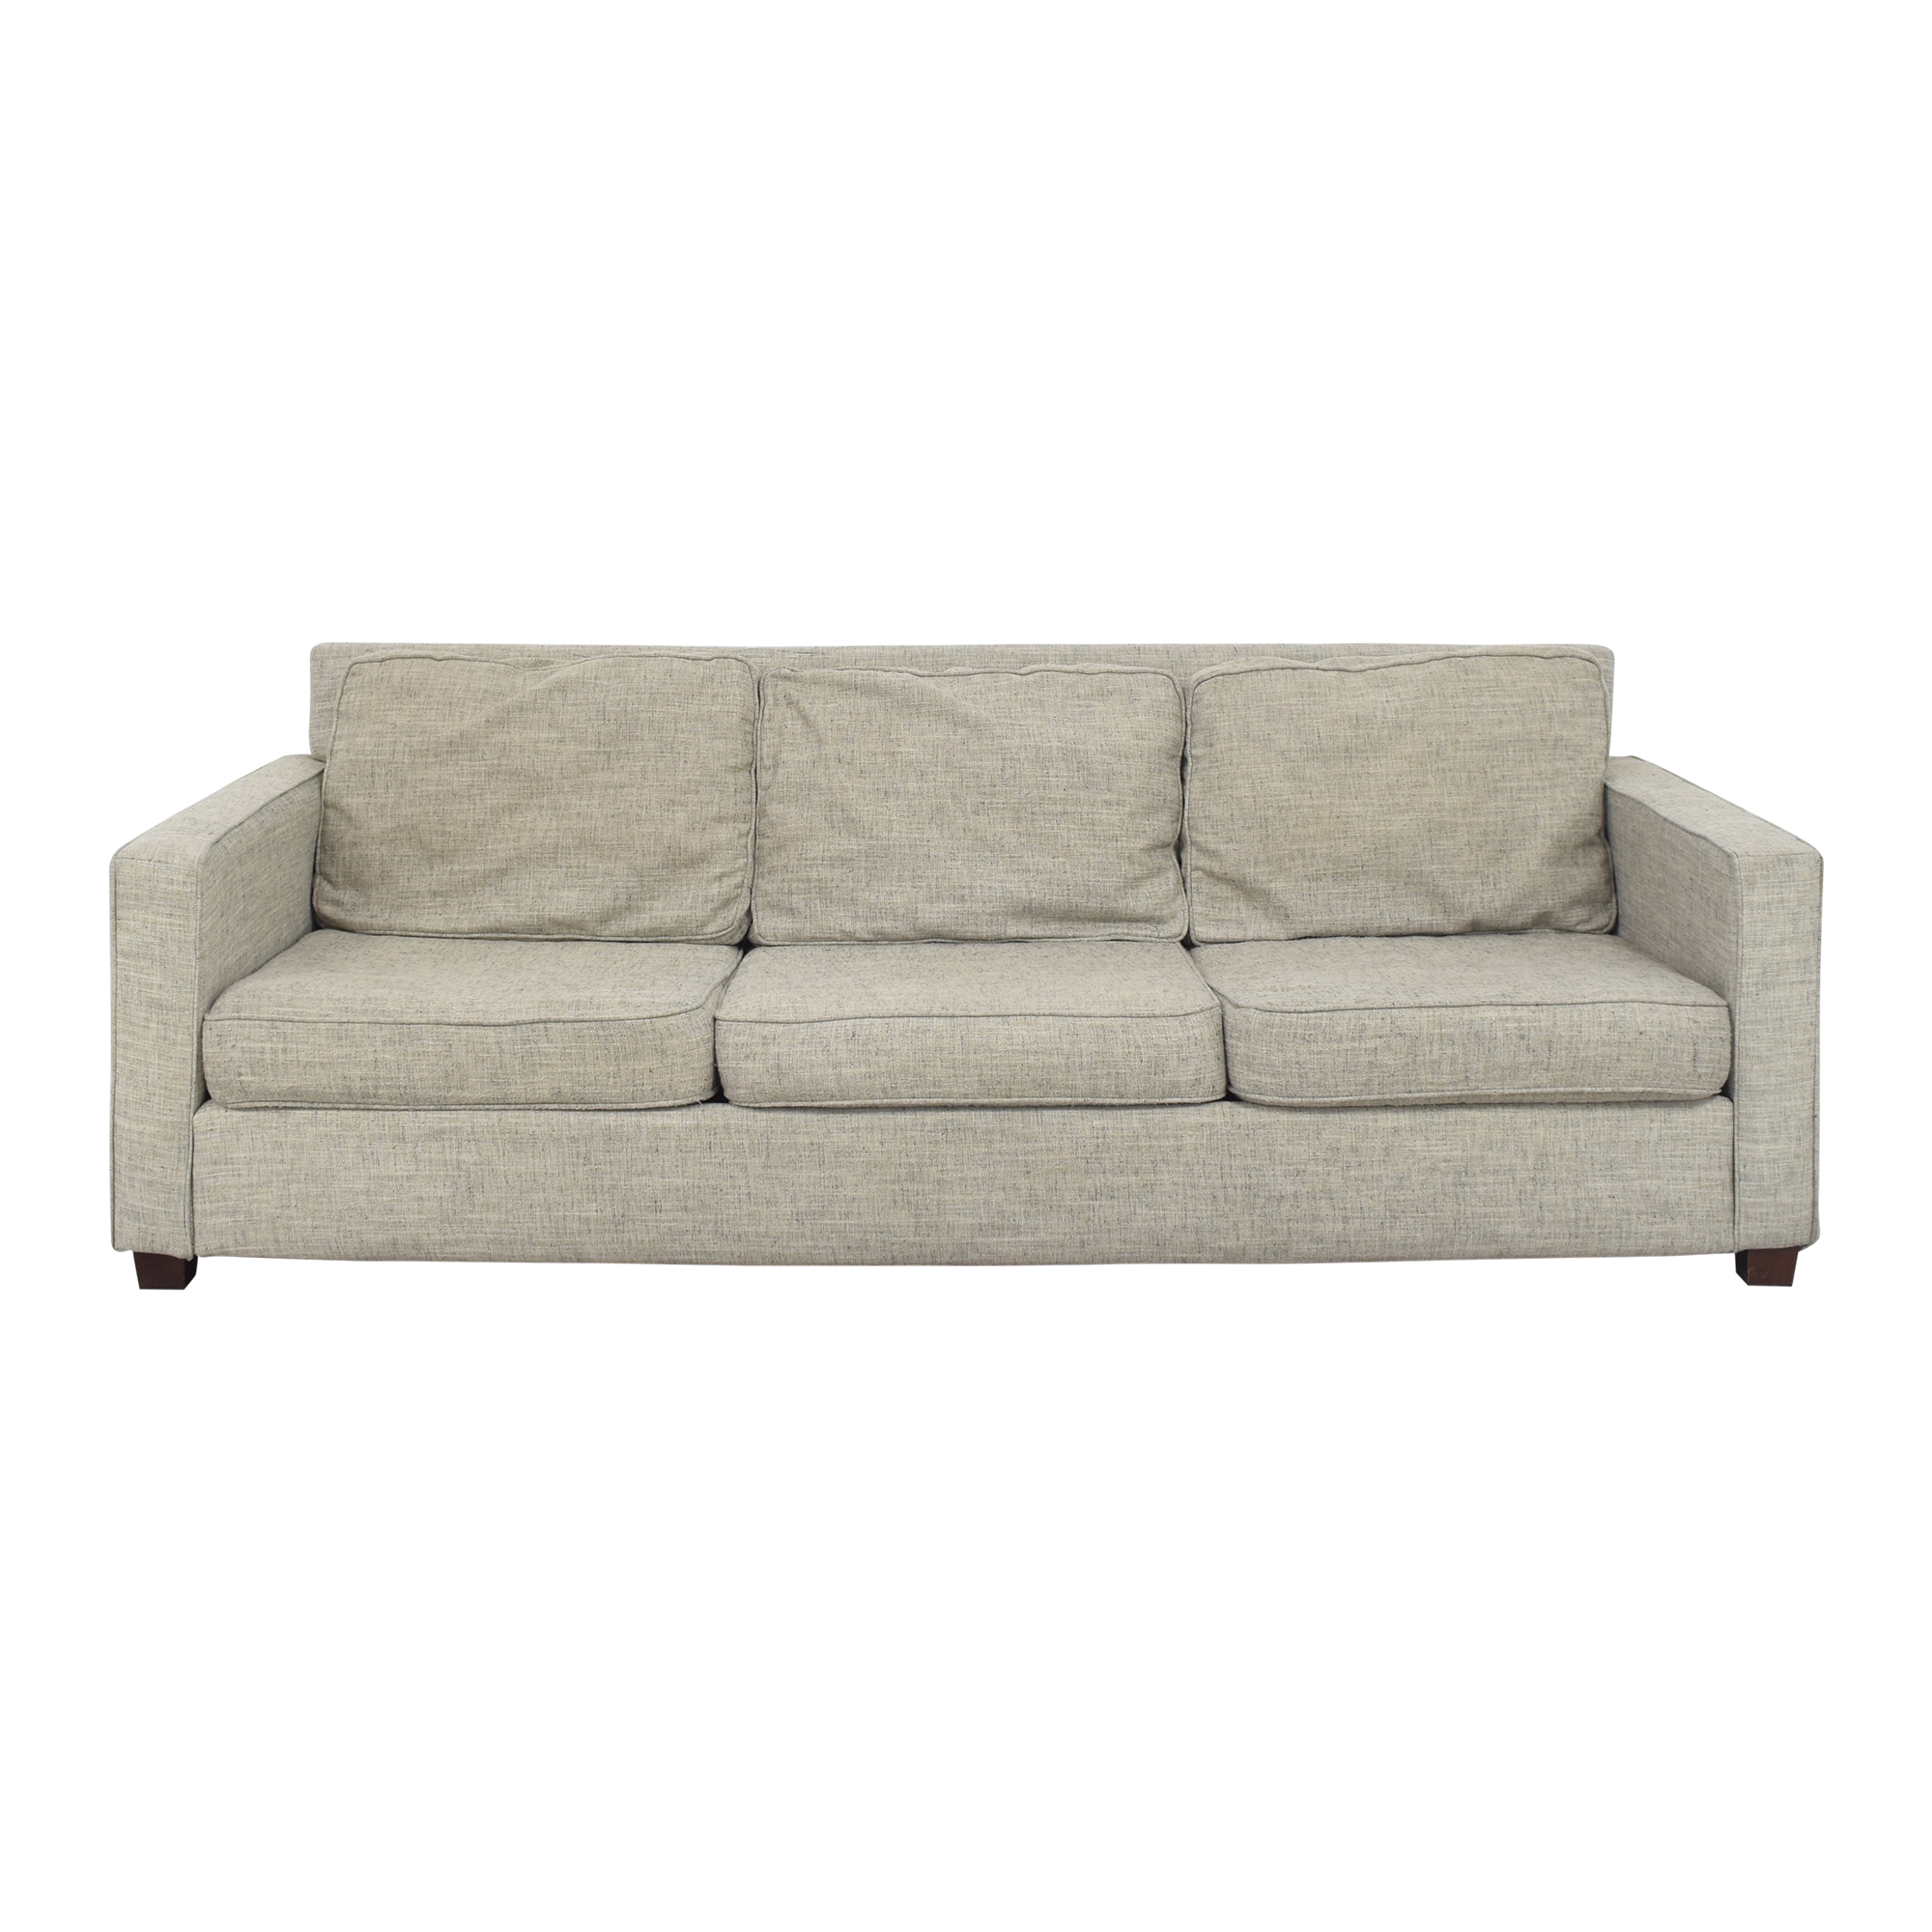 buy West Elm Henry Sofa West Elm Sofas